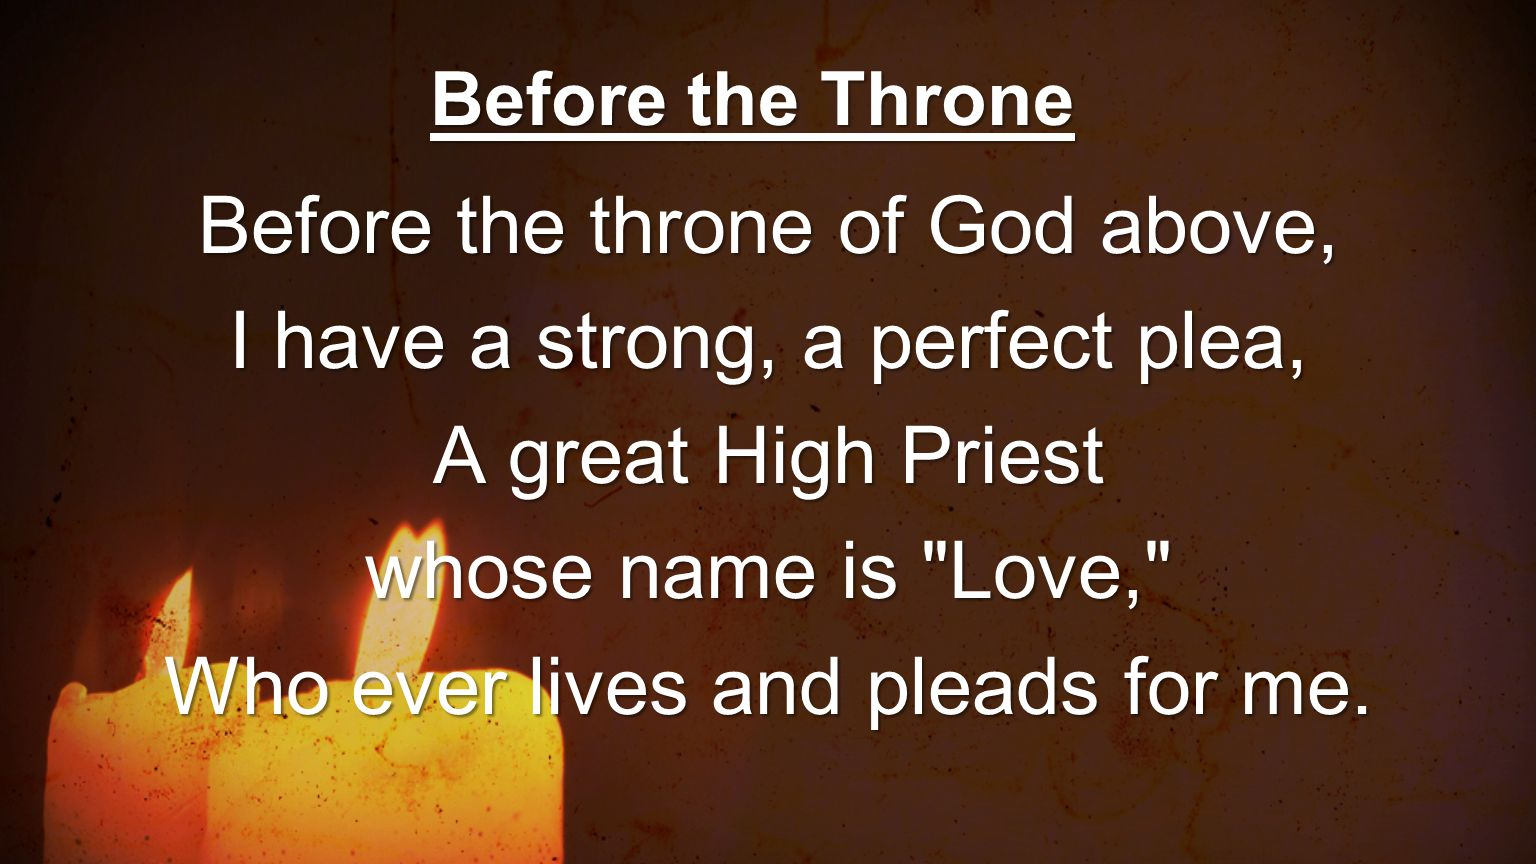 Before the throne of God above, I have a strong, a perfect plea,